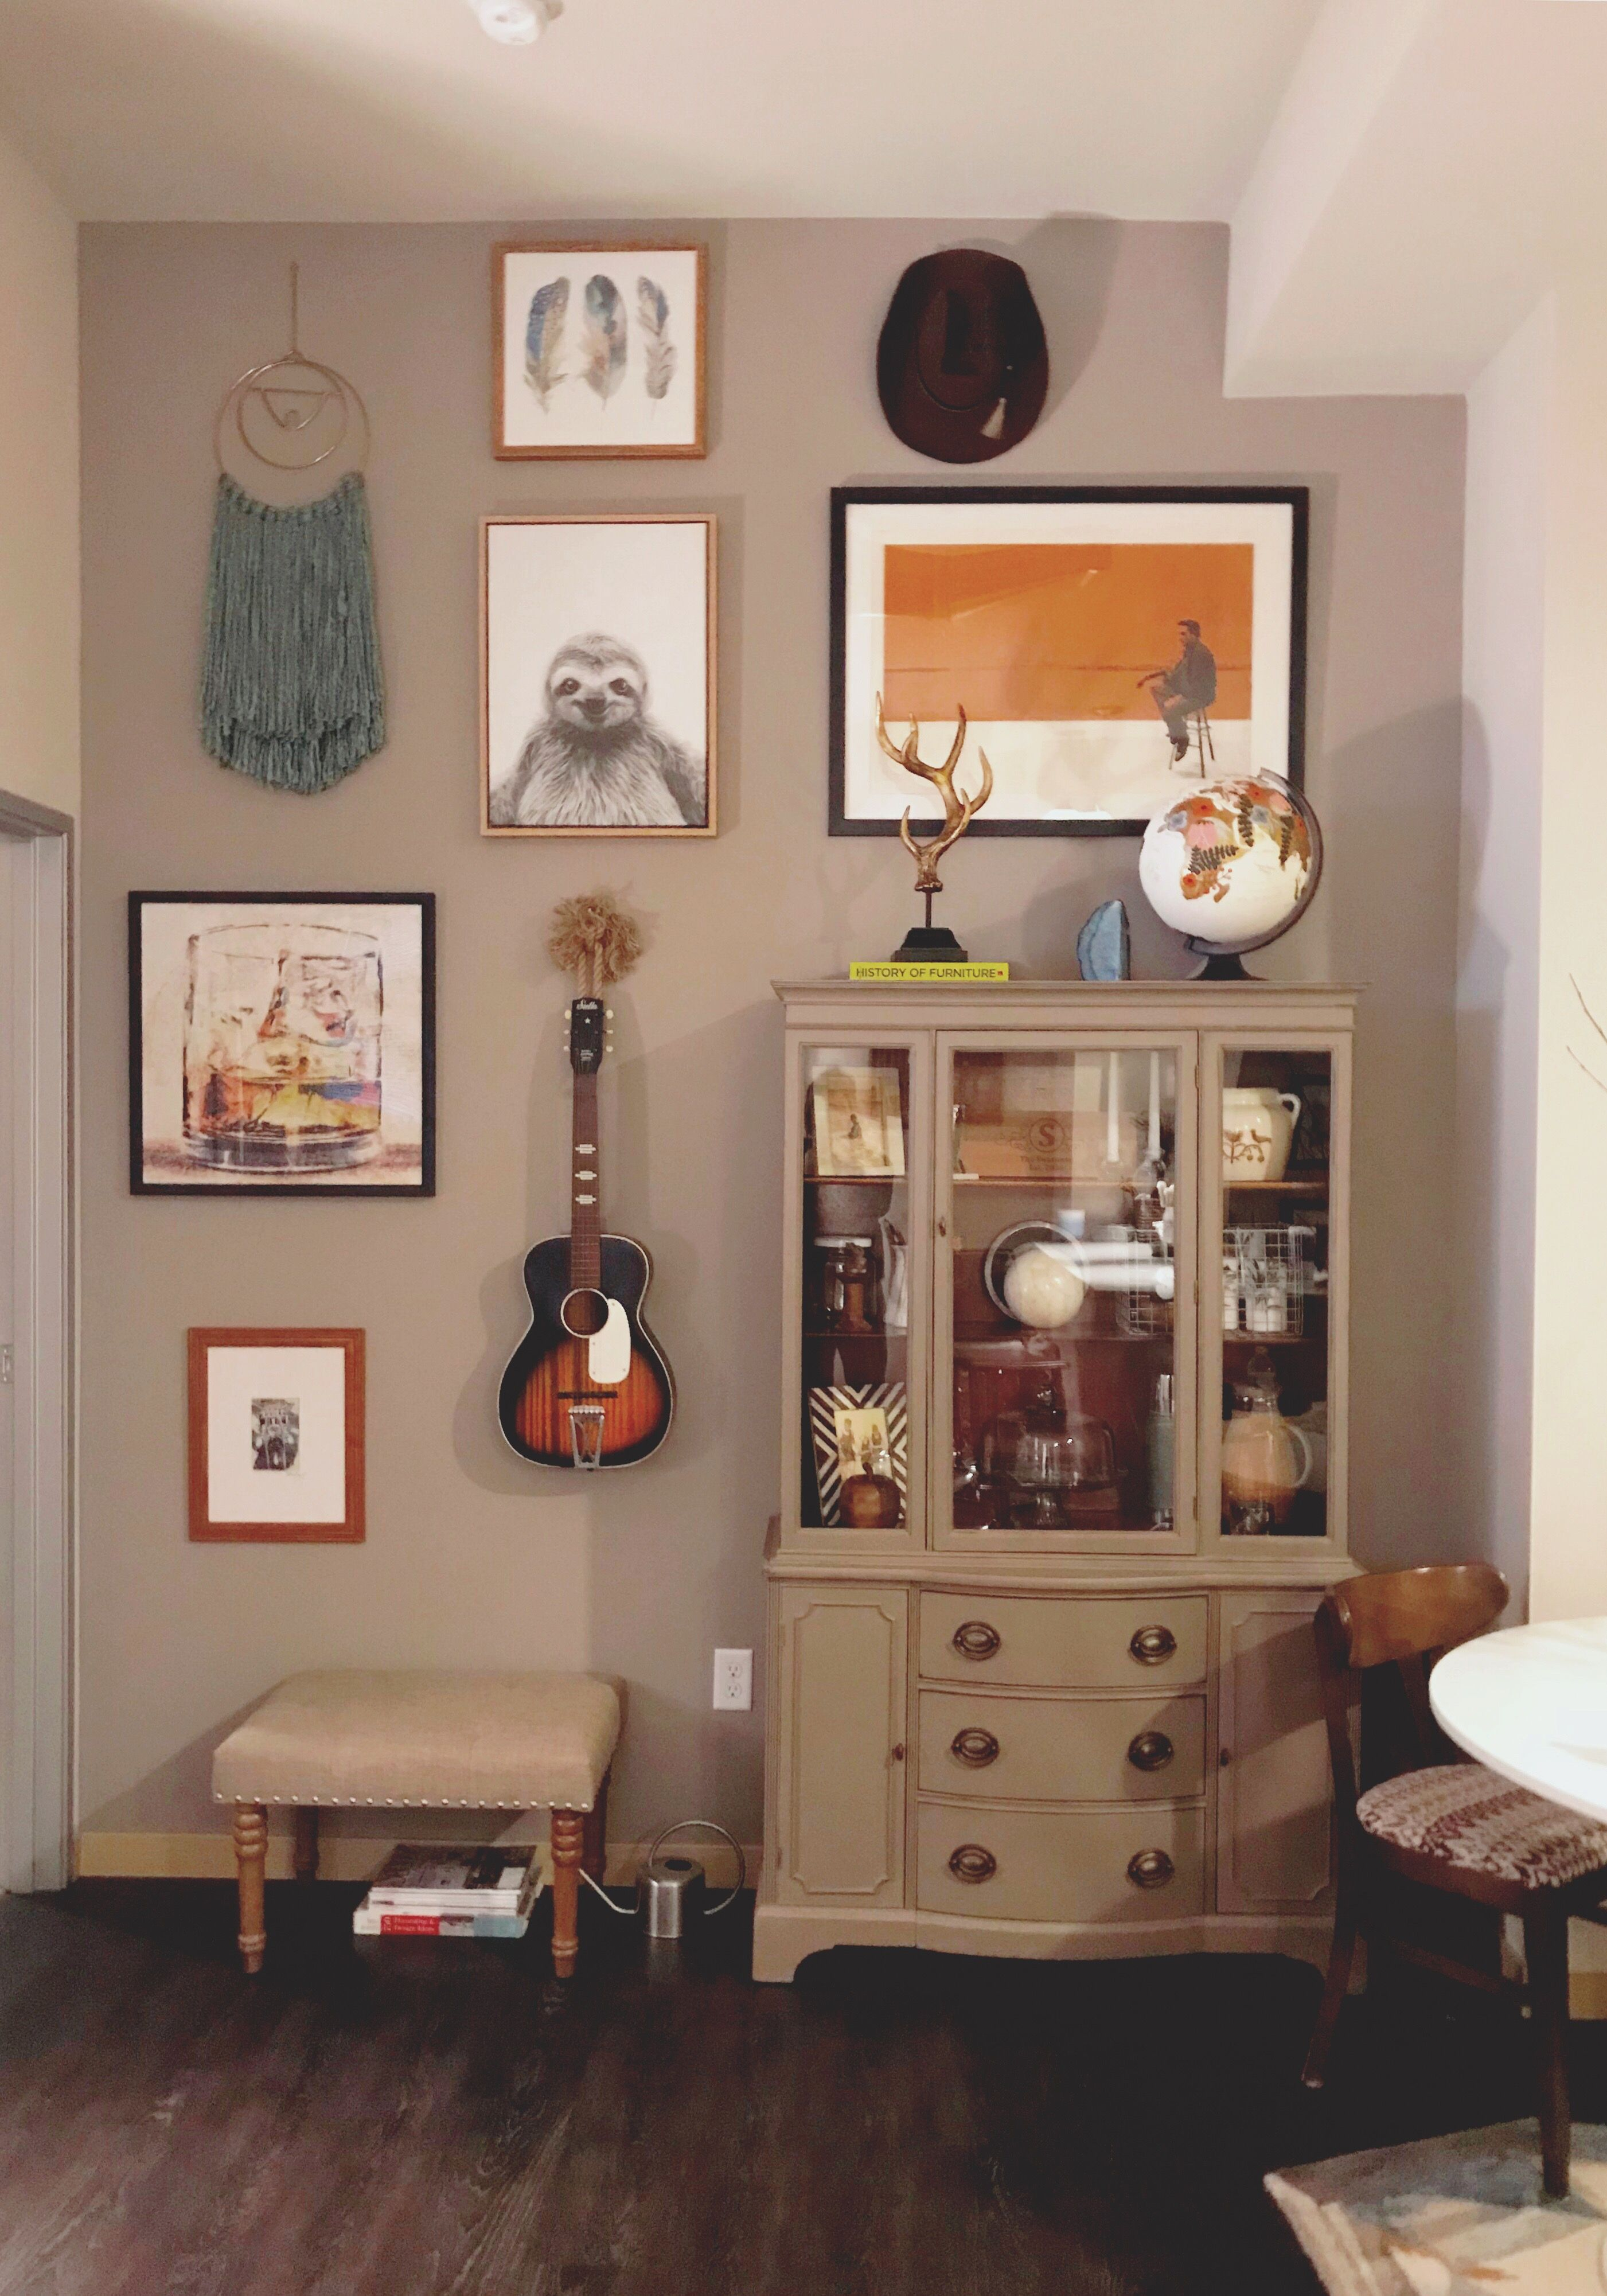 Guitar on wall with cabinet wall art and brown decor